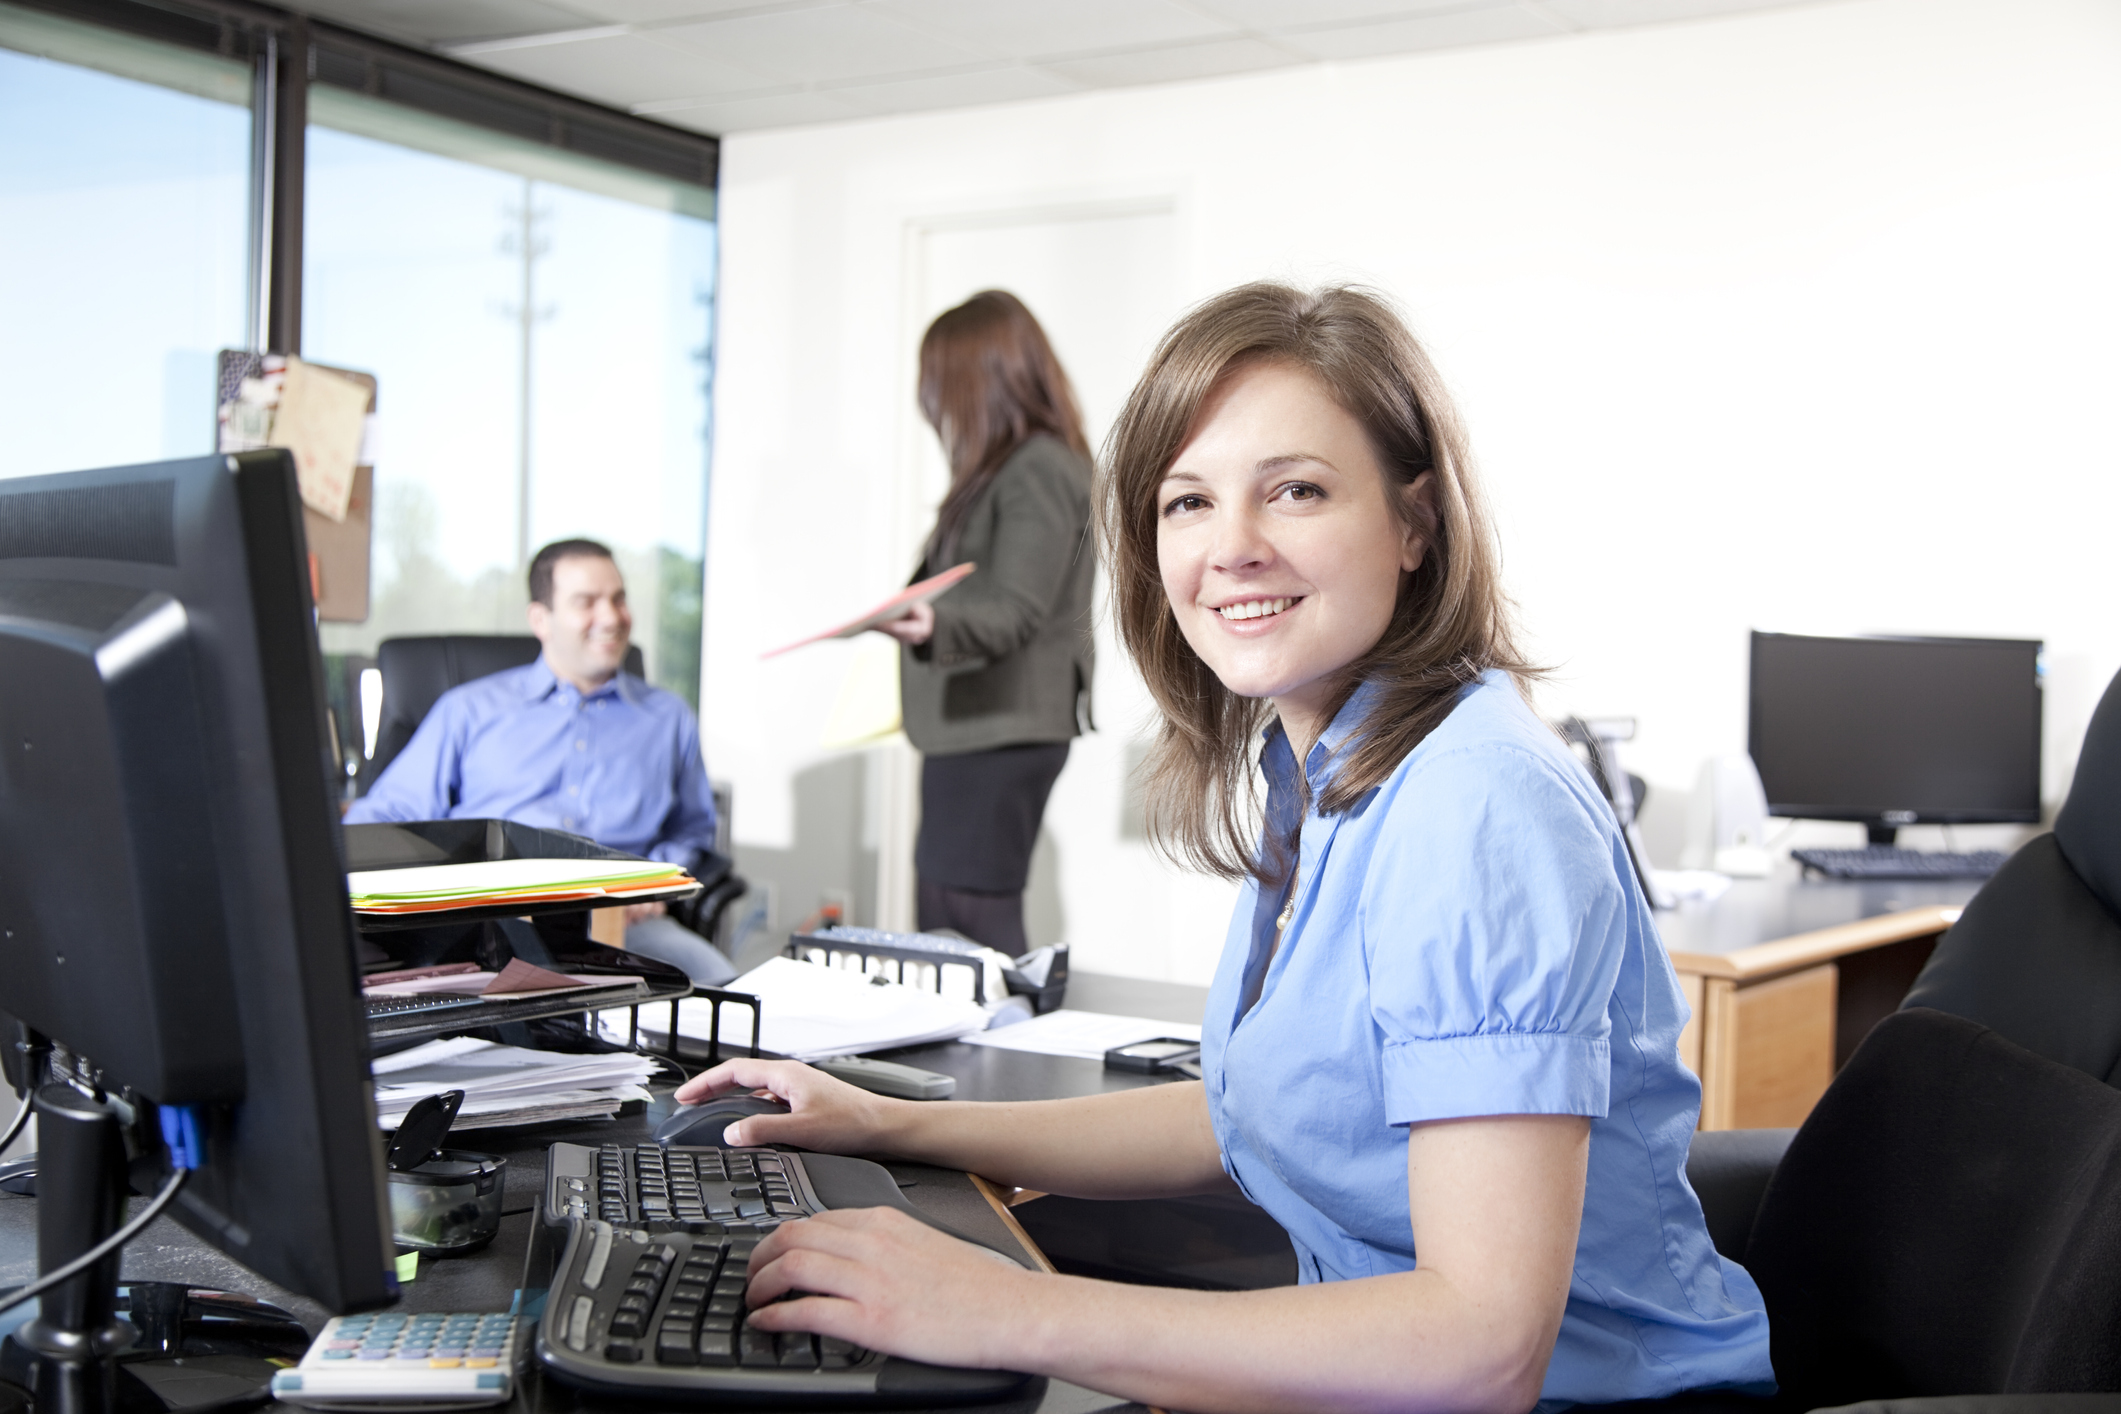 Smiling businesswoman with colleagues in the background